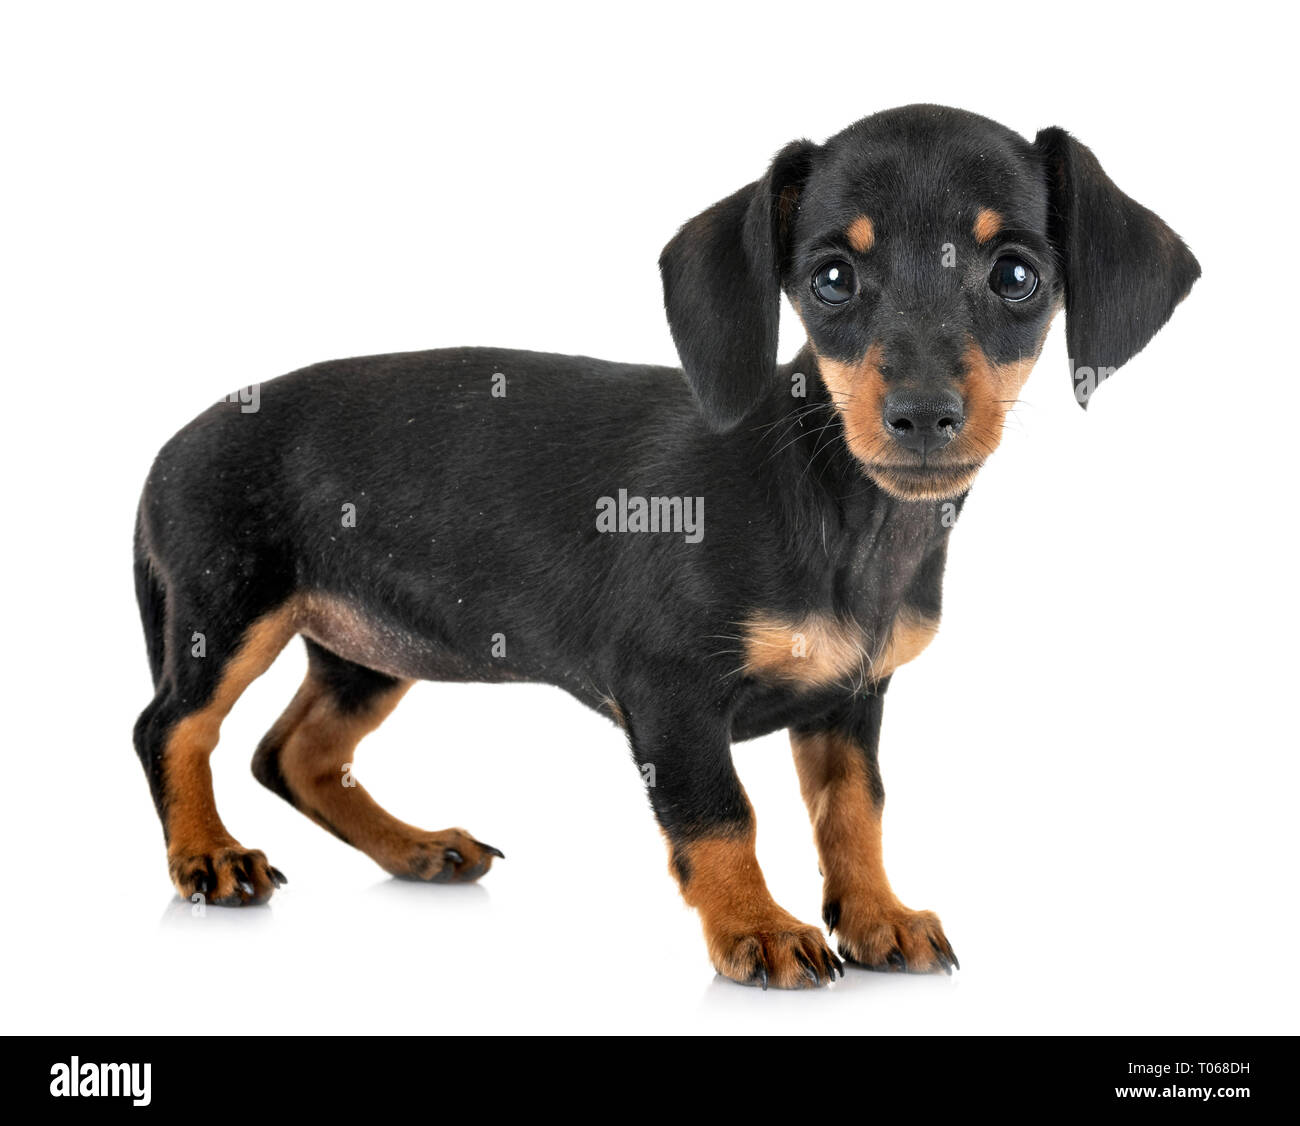 Puppy Black And Tan Miniature Dachshund In Front Of White Background Stock Photo Alamy